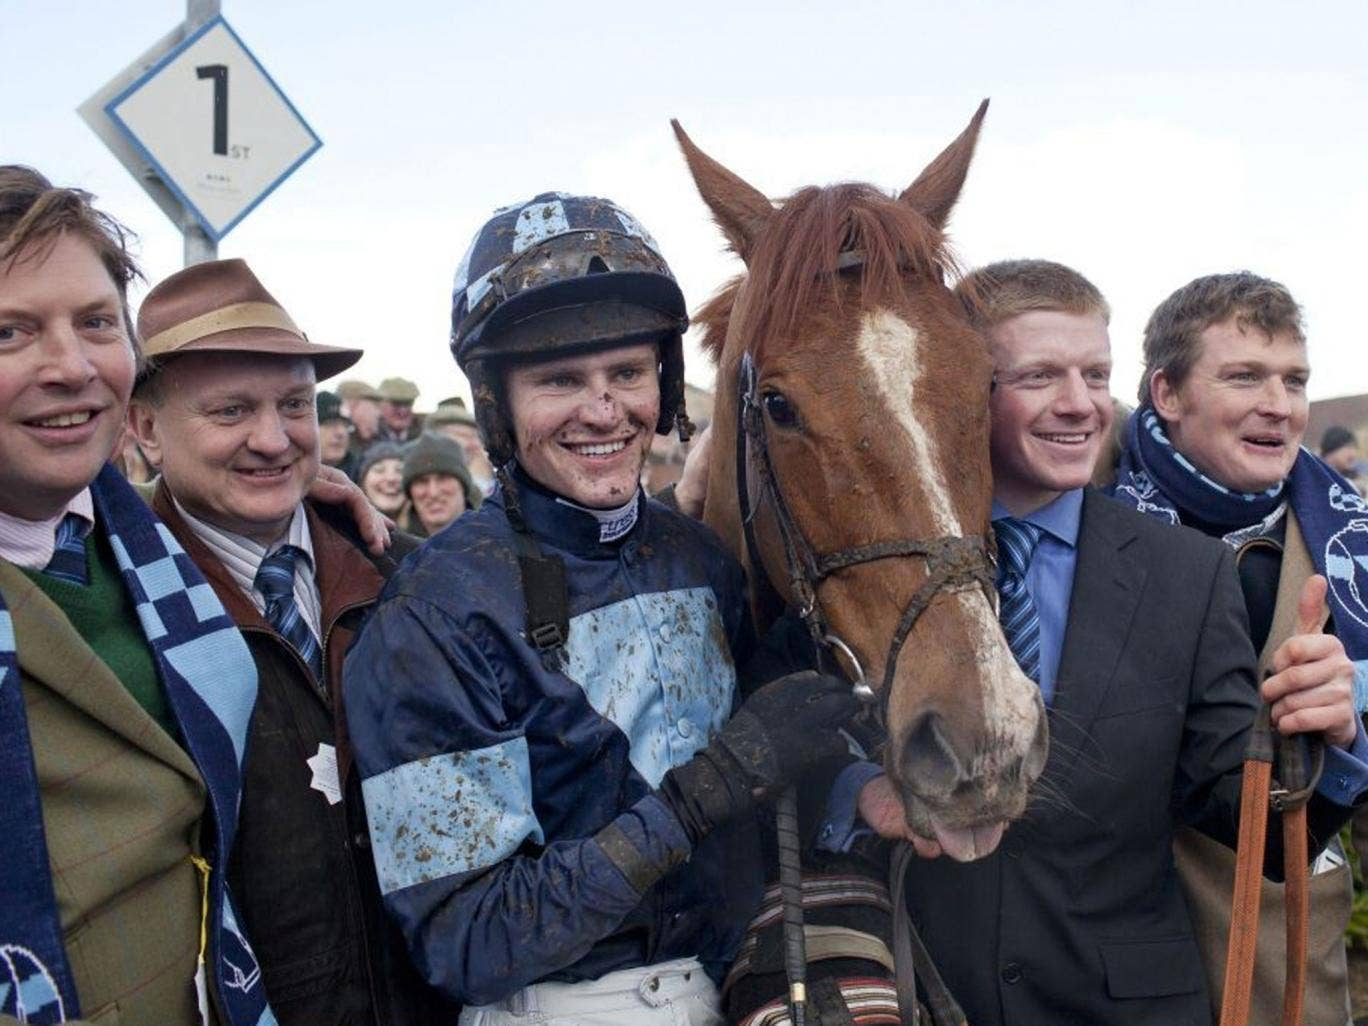 Meet and greet: Melodic Rendezvous and jockey Nick Scholfield return victorious at Wincanton